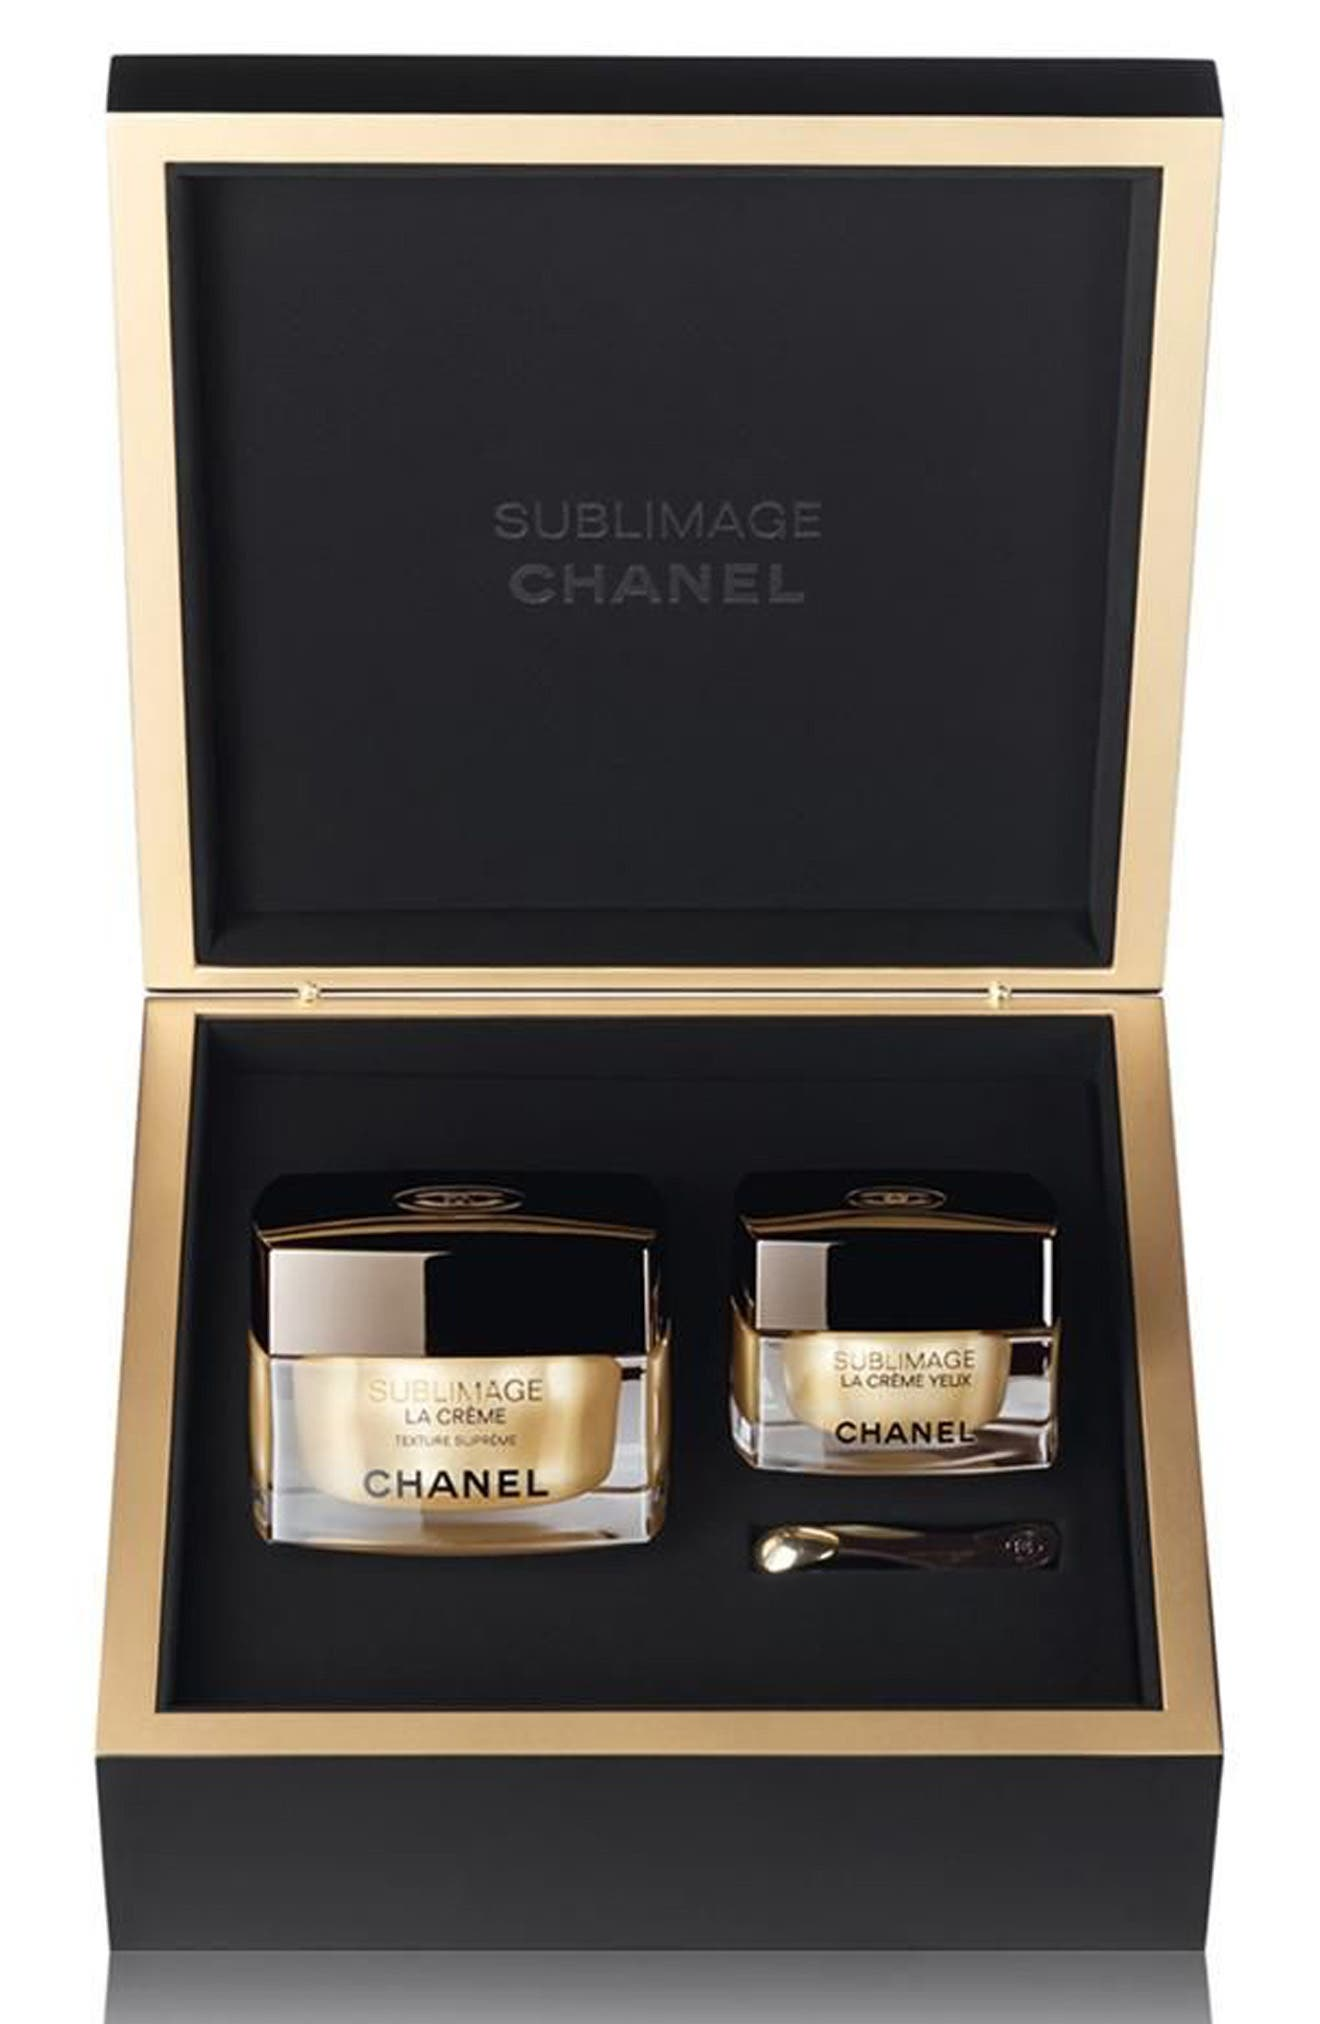 CHANEL SUBLIMAGE LE COFFRET